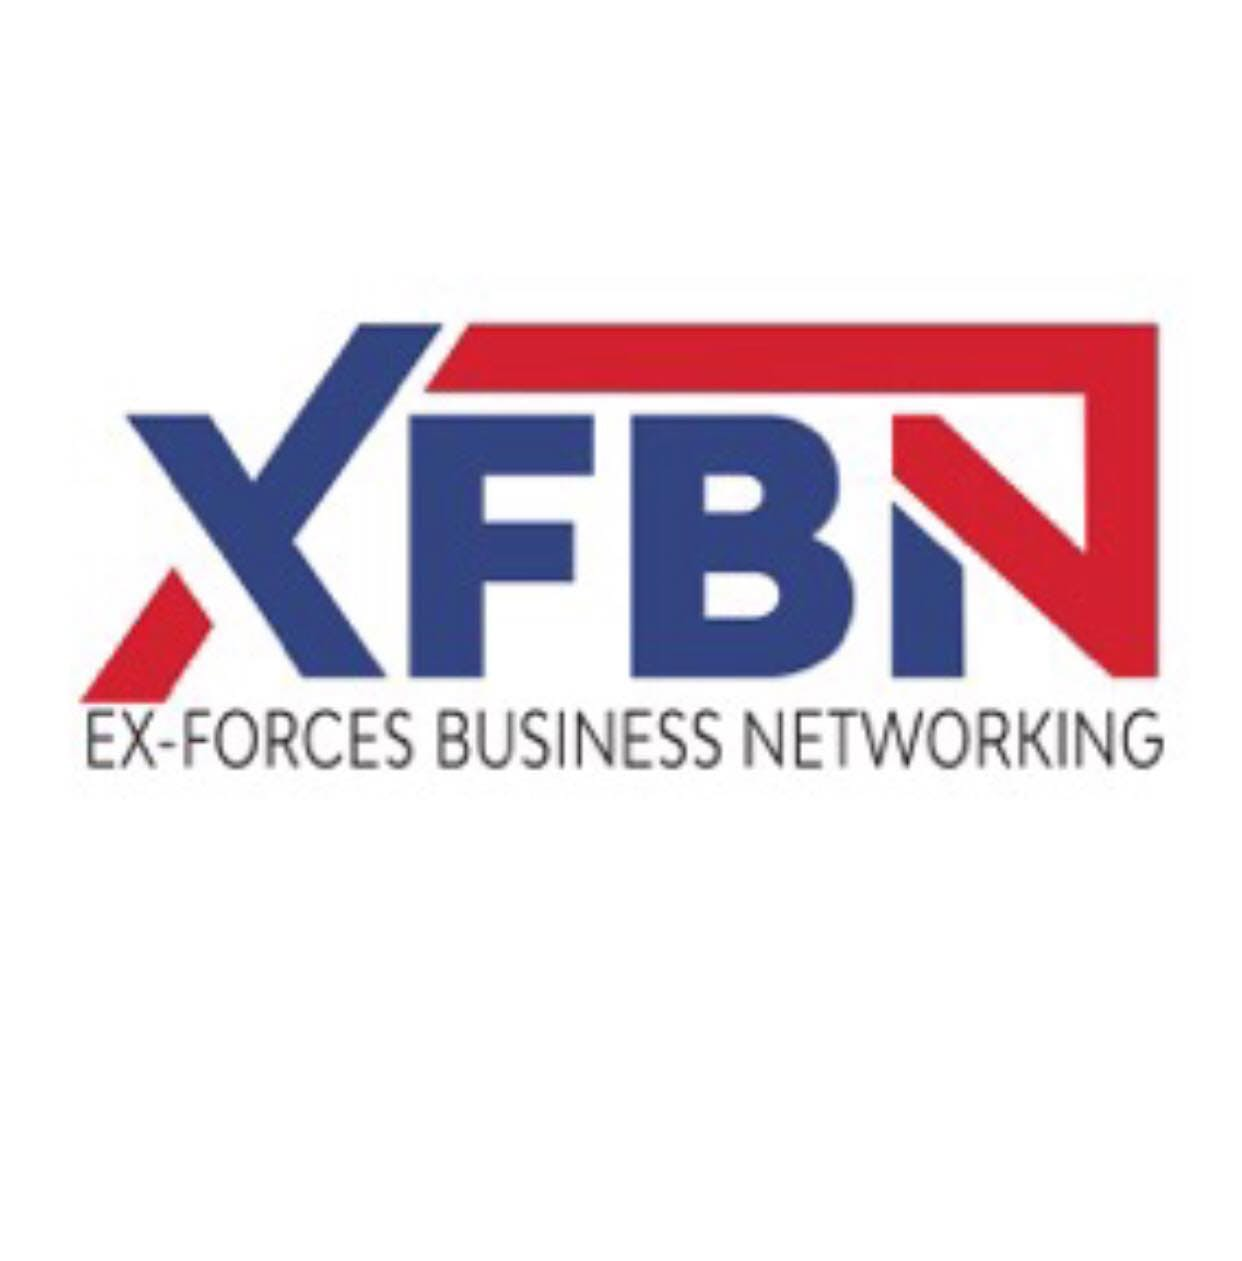 EX-FORCES BUSINESS NETWORKING